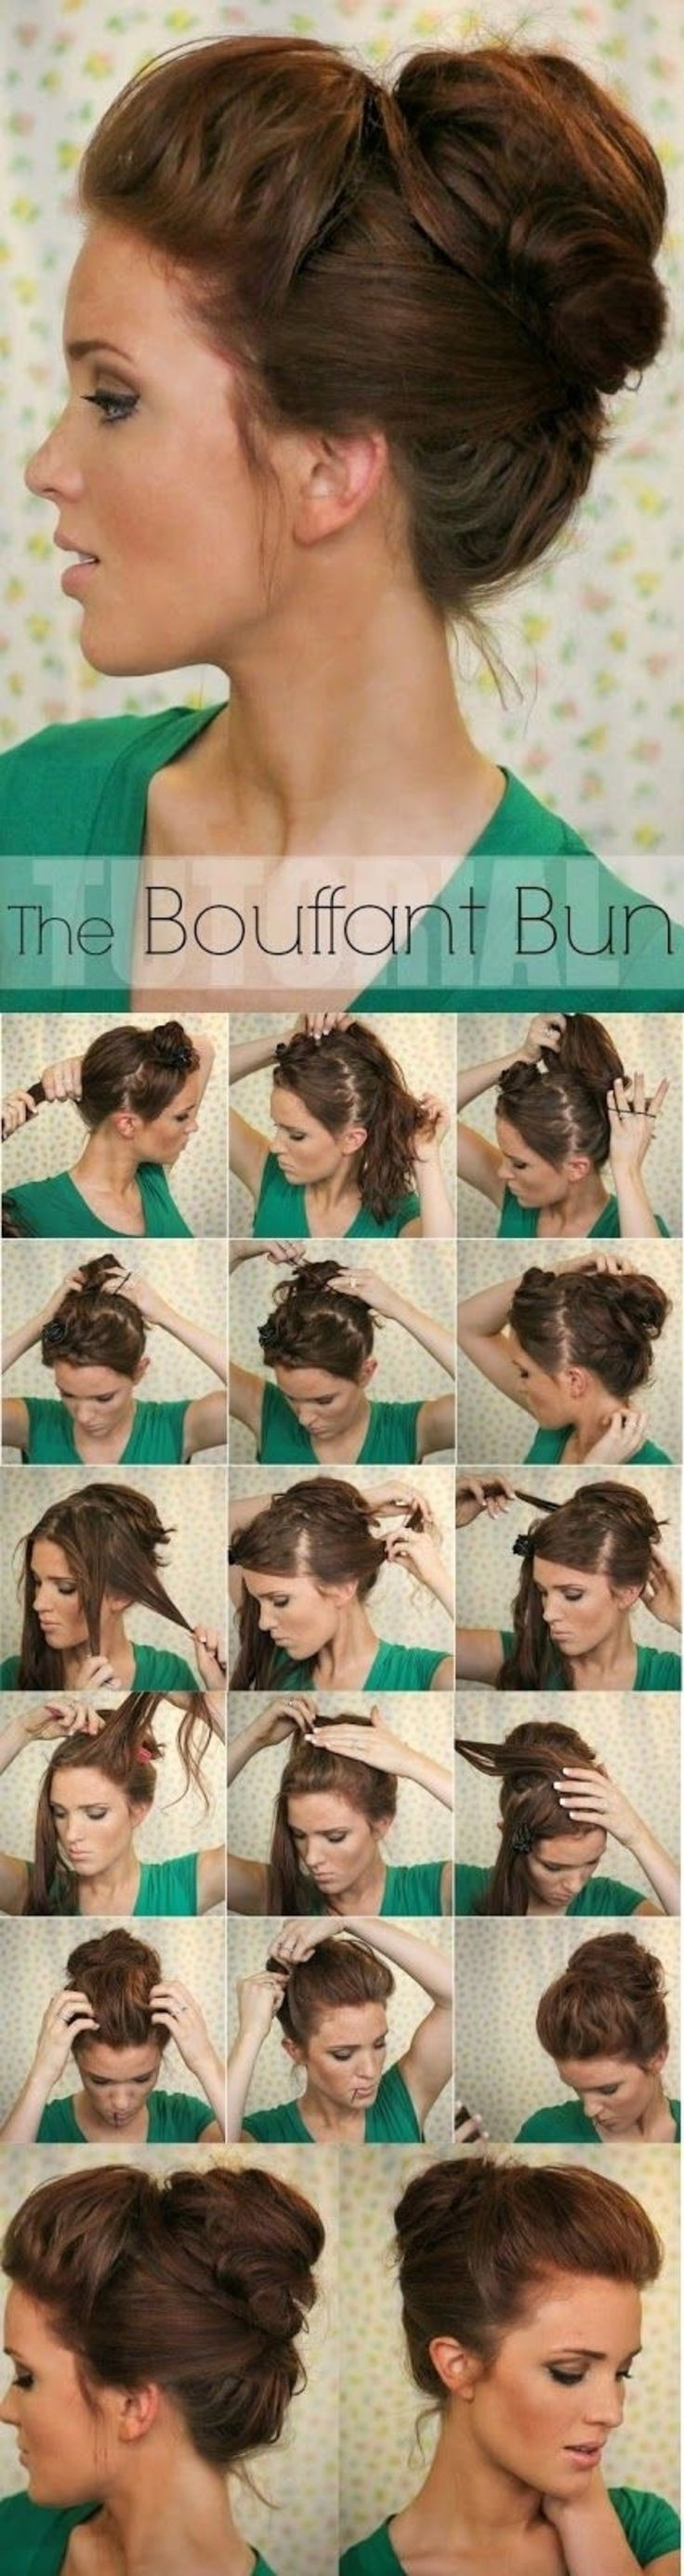 Short Sassy Cuts for Women | Short Curly Haircuts For Fine Hair Get it here! 4636 356 10 Cyndi Orsburn Hair-raising Ideas for Me Tonya Castellana Just about ready to go back to this! I LOVED IT!